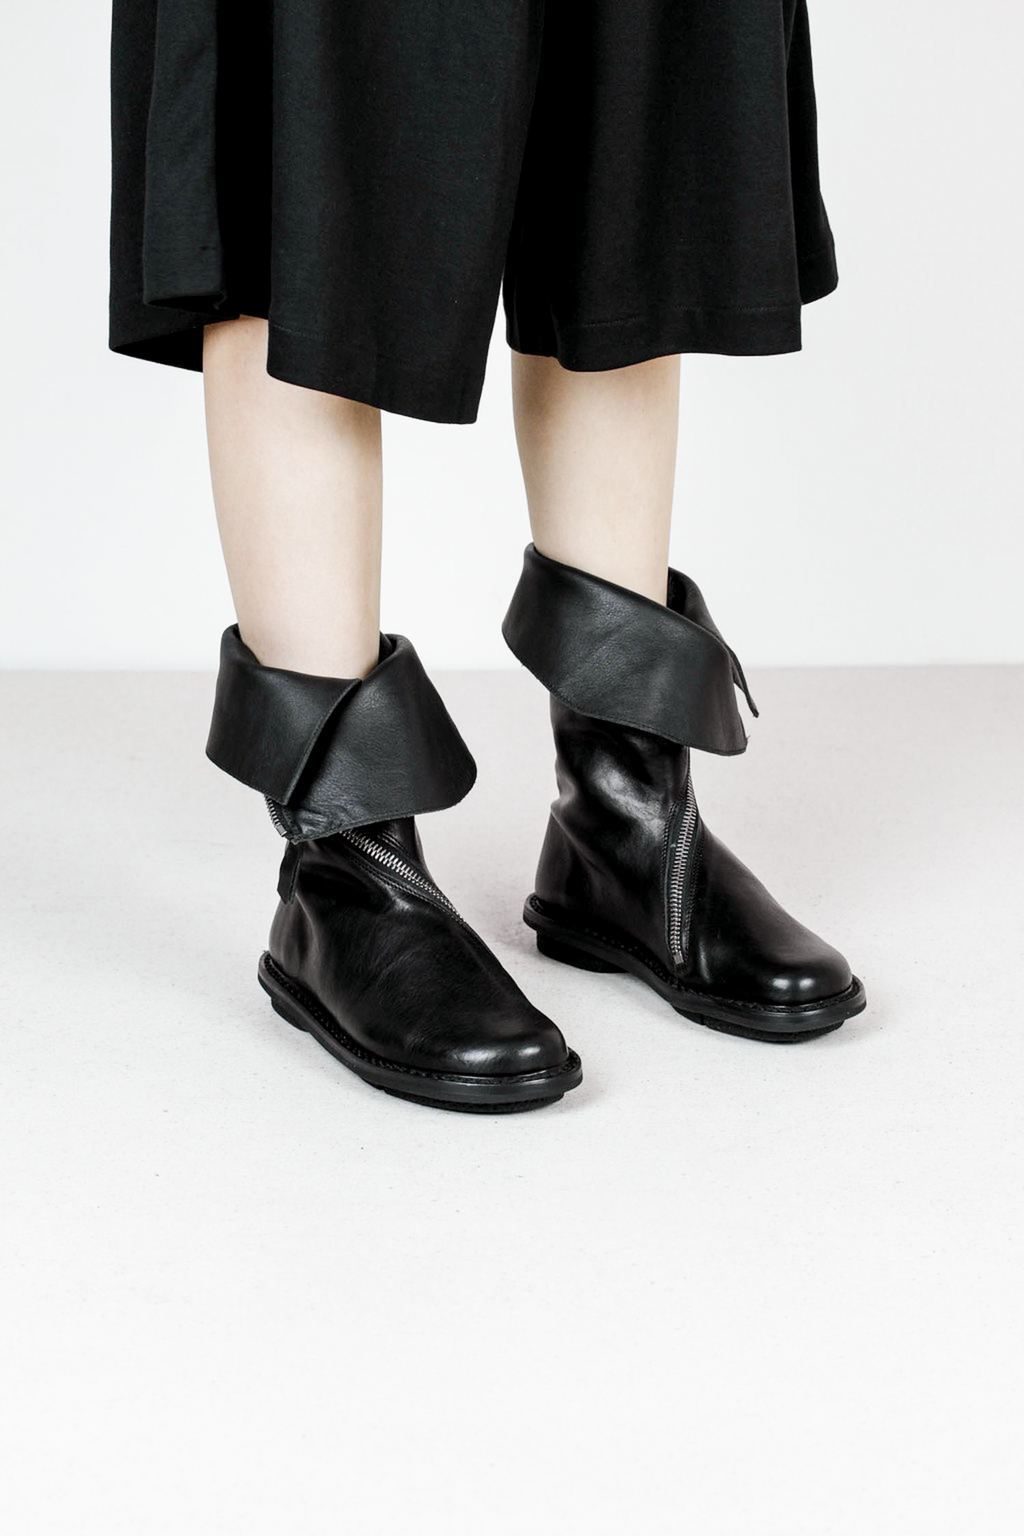 Trippen onion f waw blk leather boots